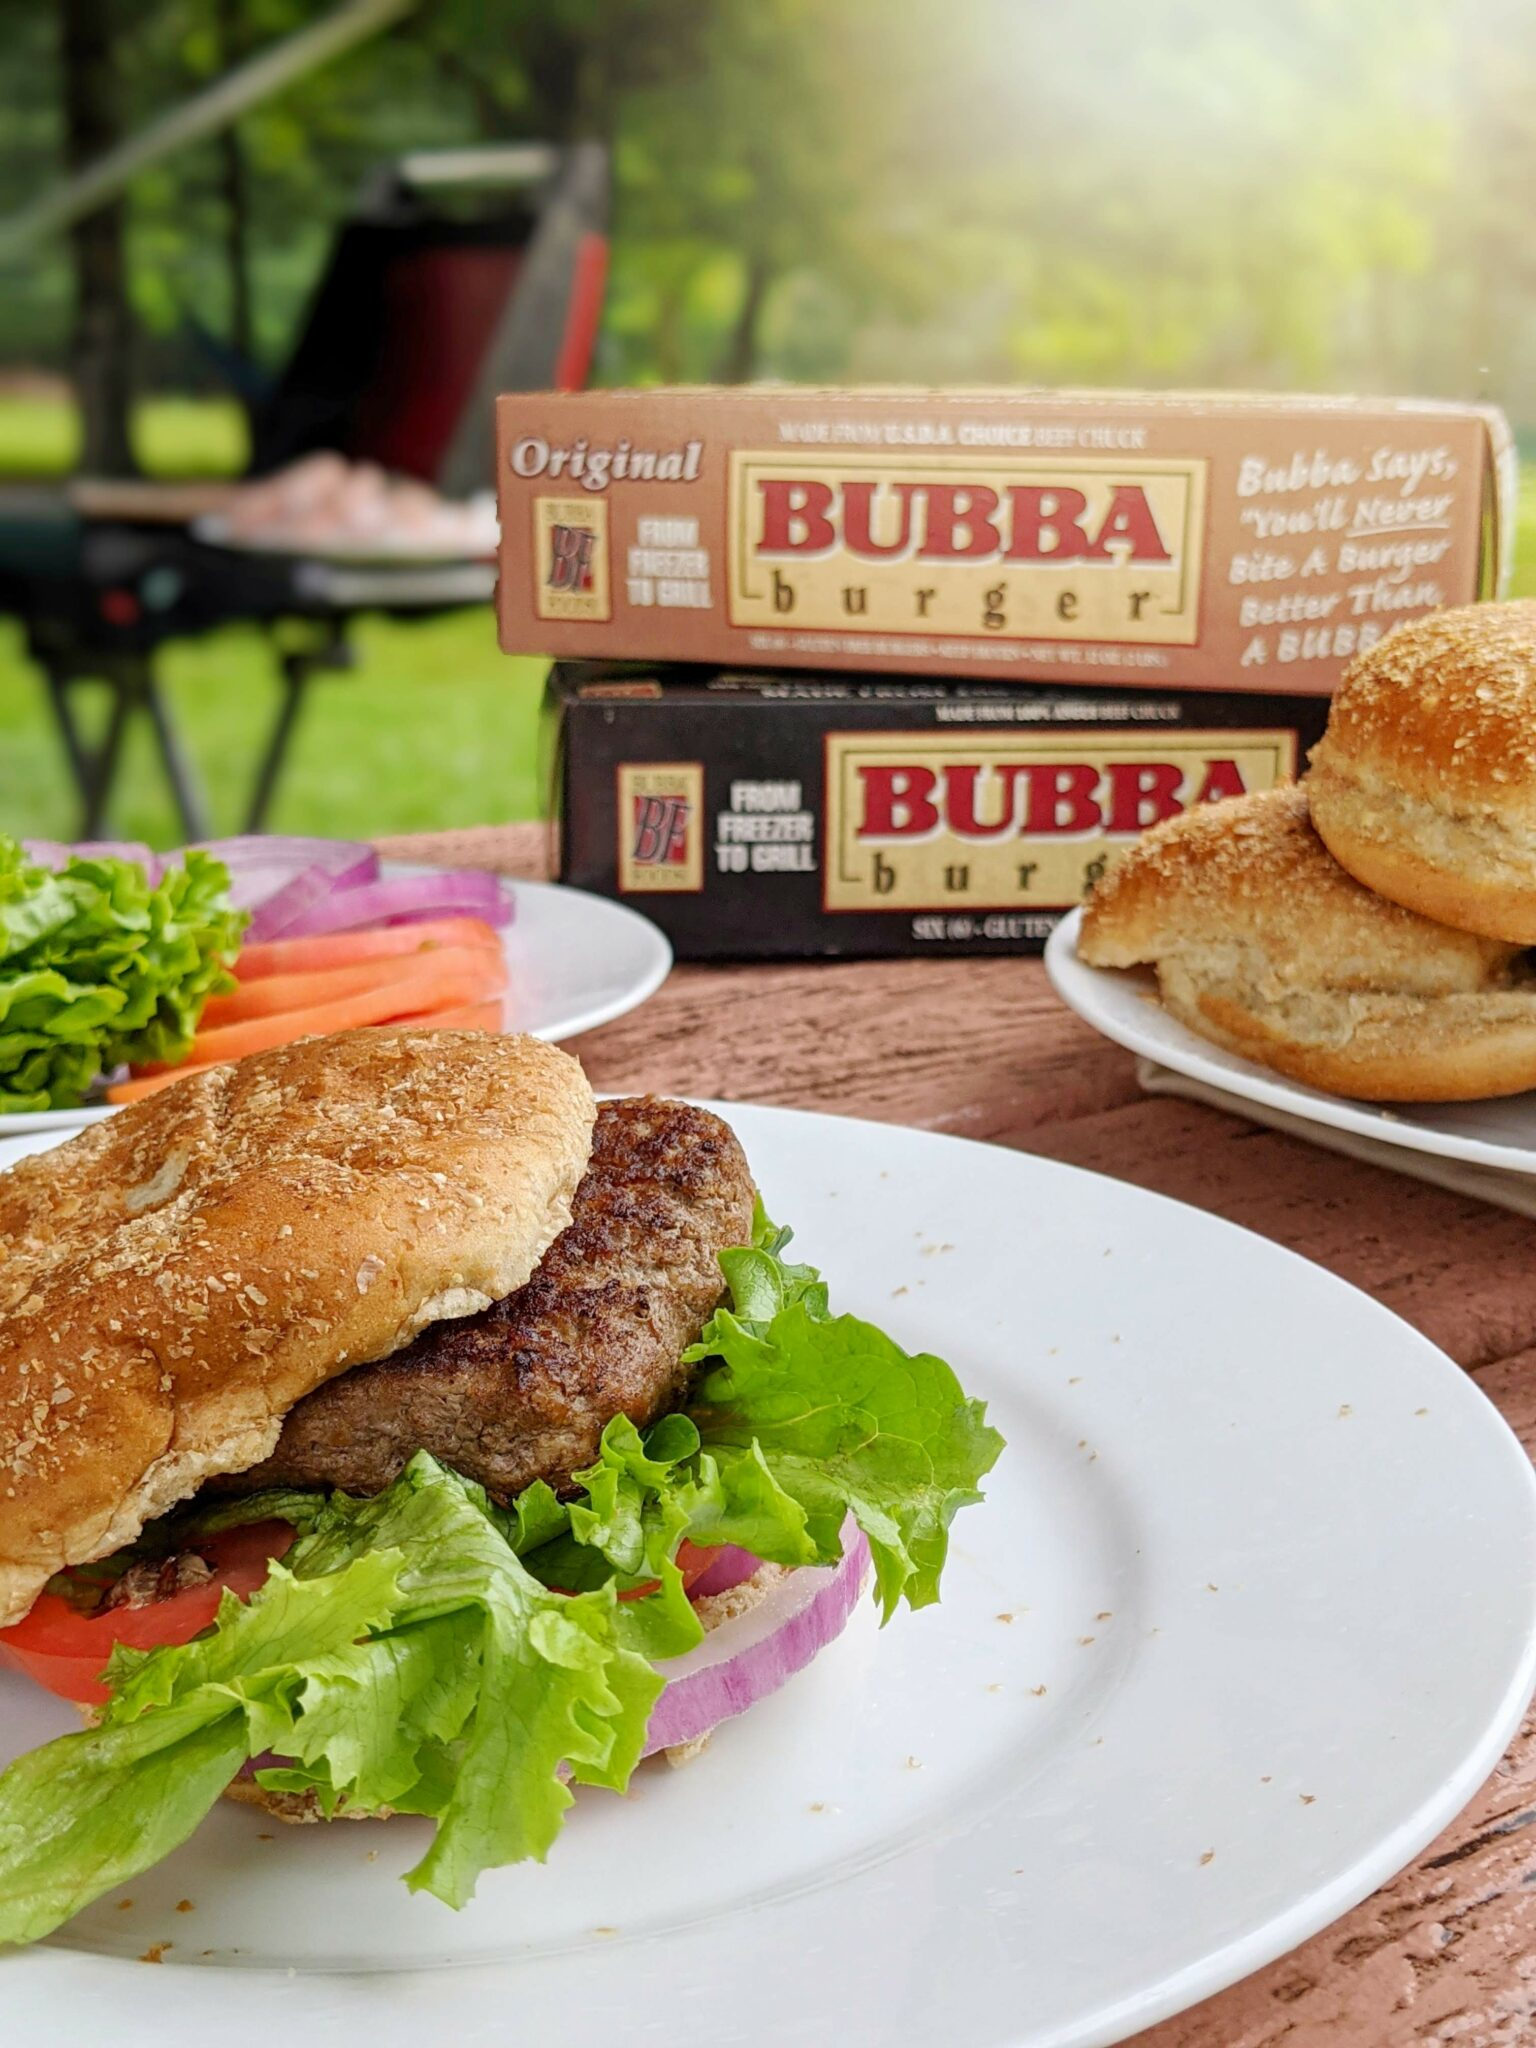 My Favorite Camping Meal Hacks with BUBBA Burger All Things with Purpose Sarah Lemp 2